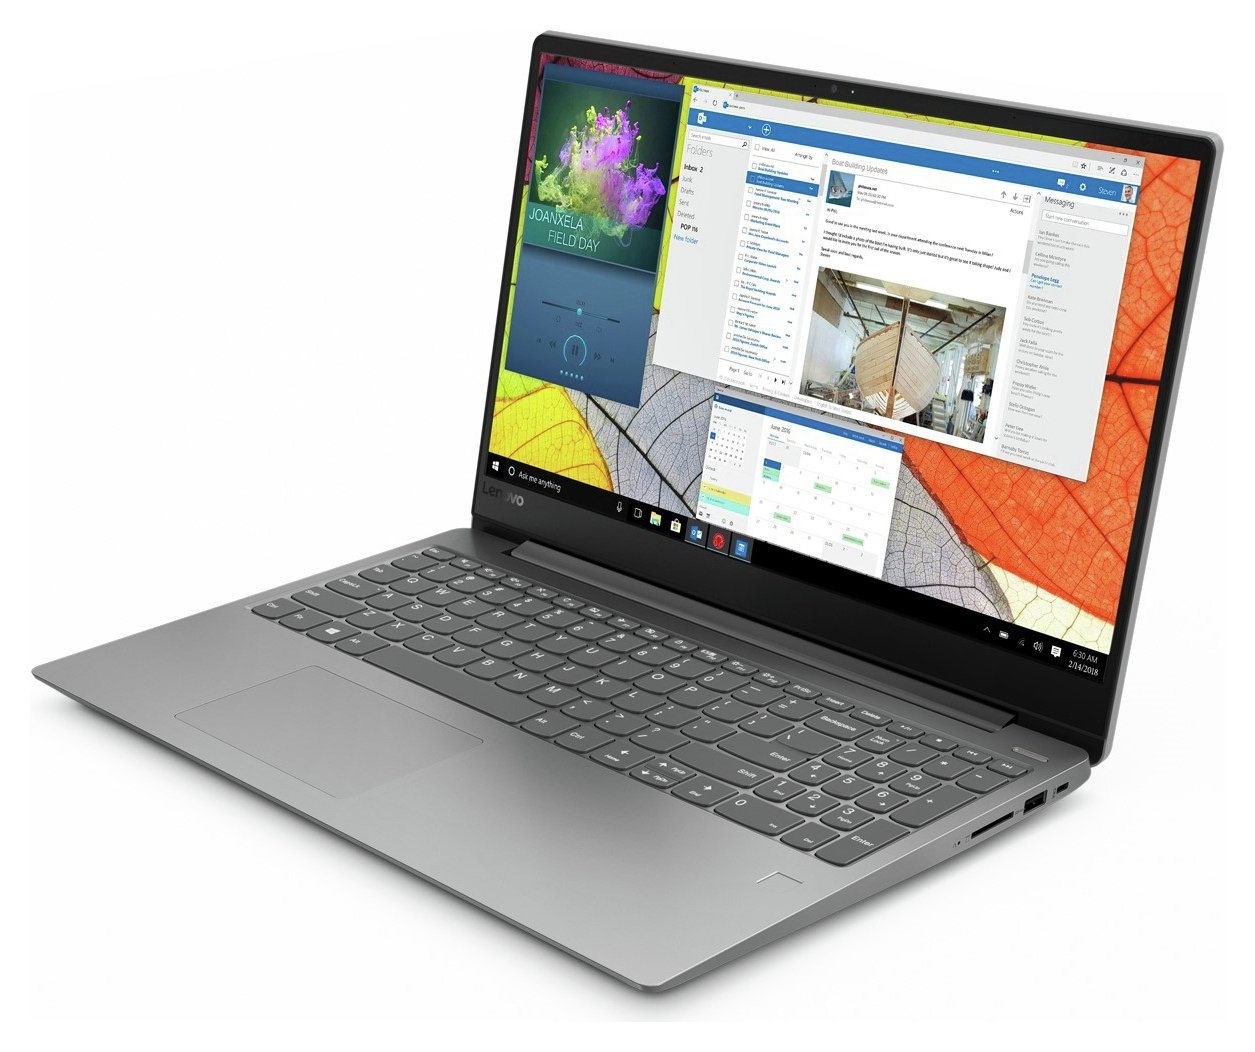 Lenovo IdeaPad 330S 15.6 Inch AMD A9 4GB 128GB Laptop